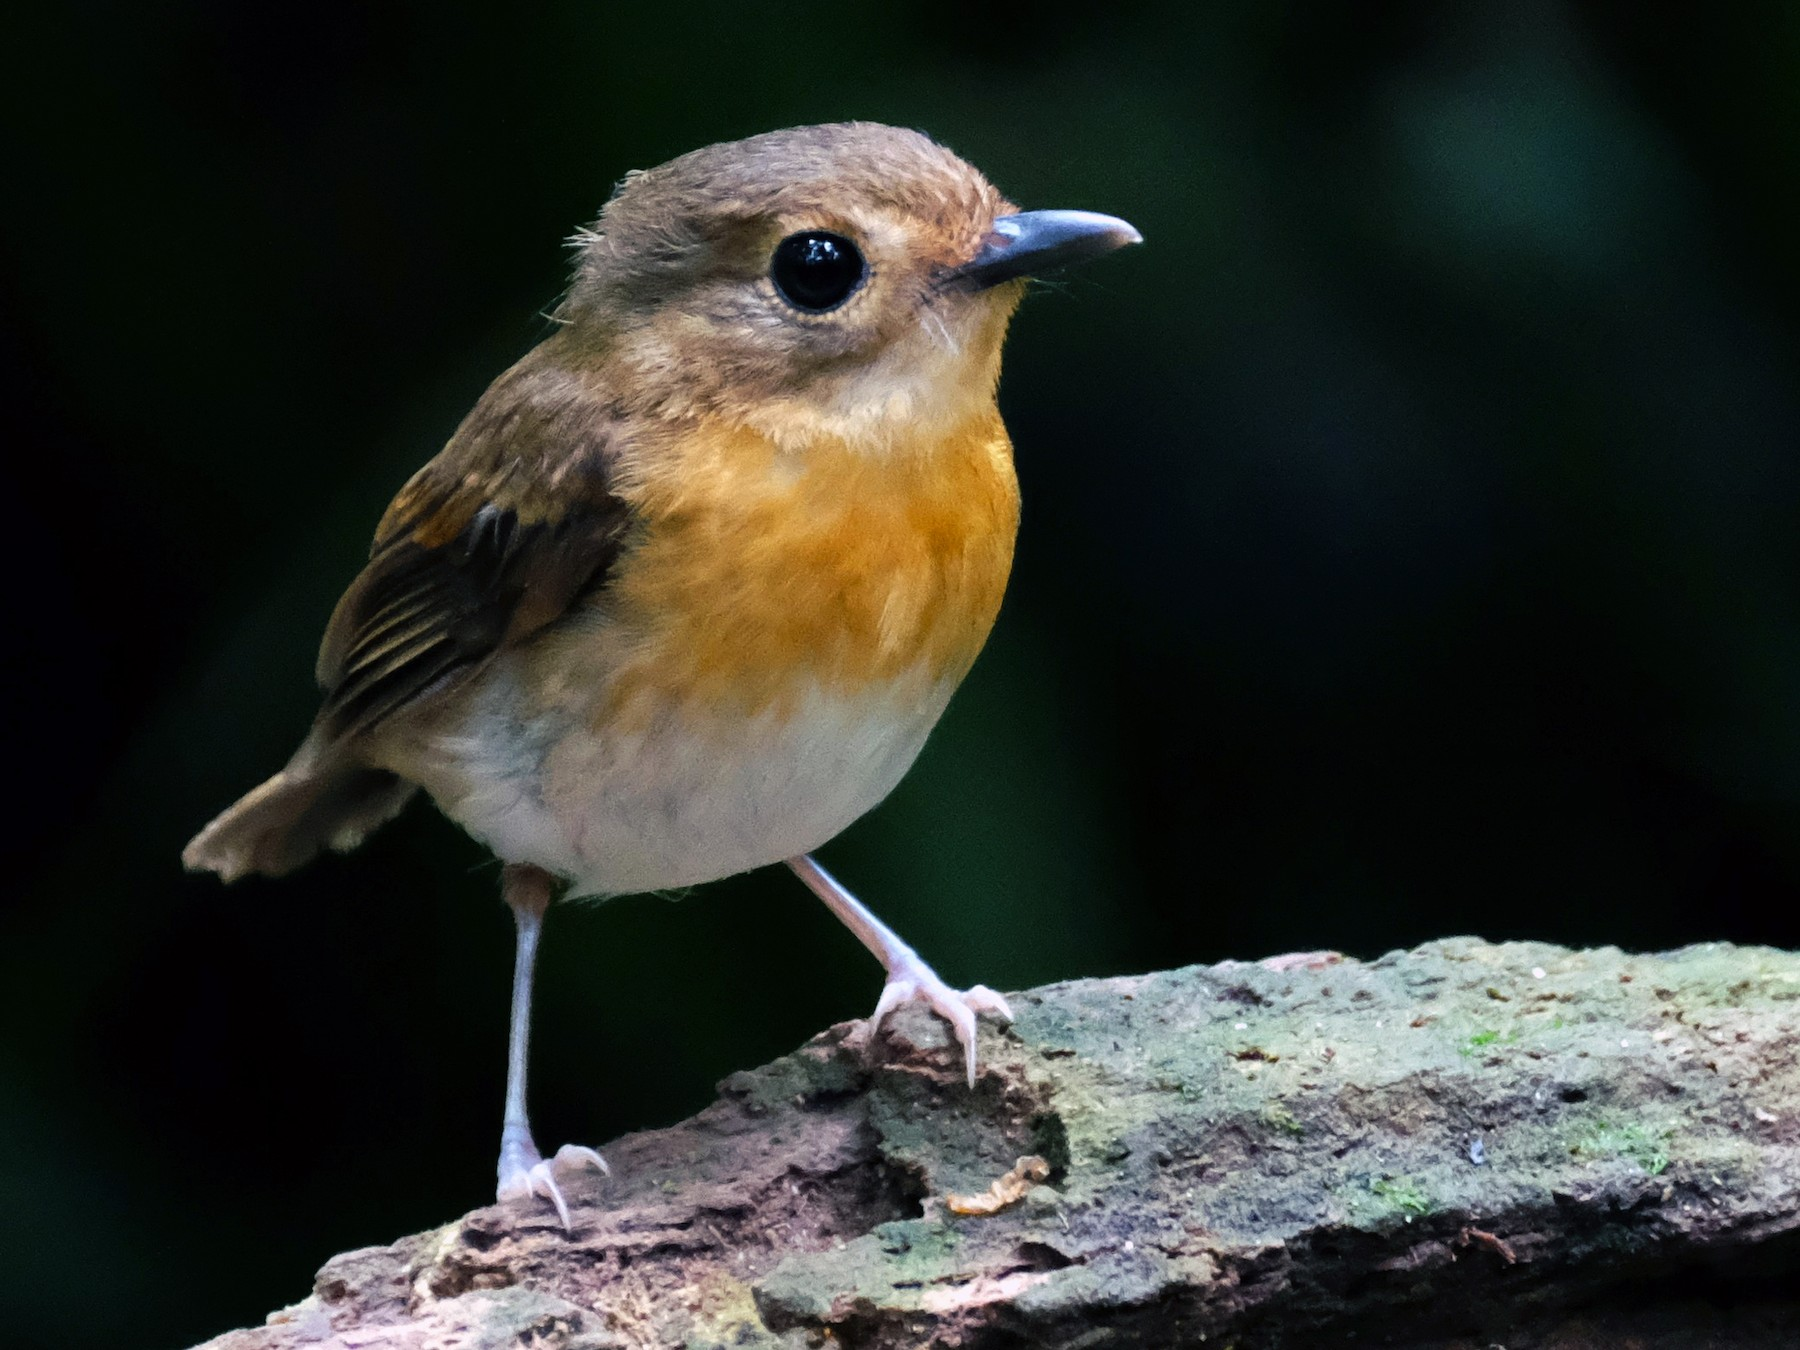 Rufous-chested Flycatcher - lim ying hien